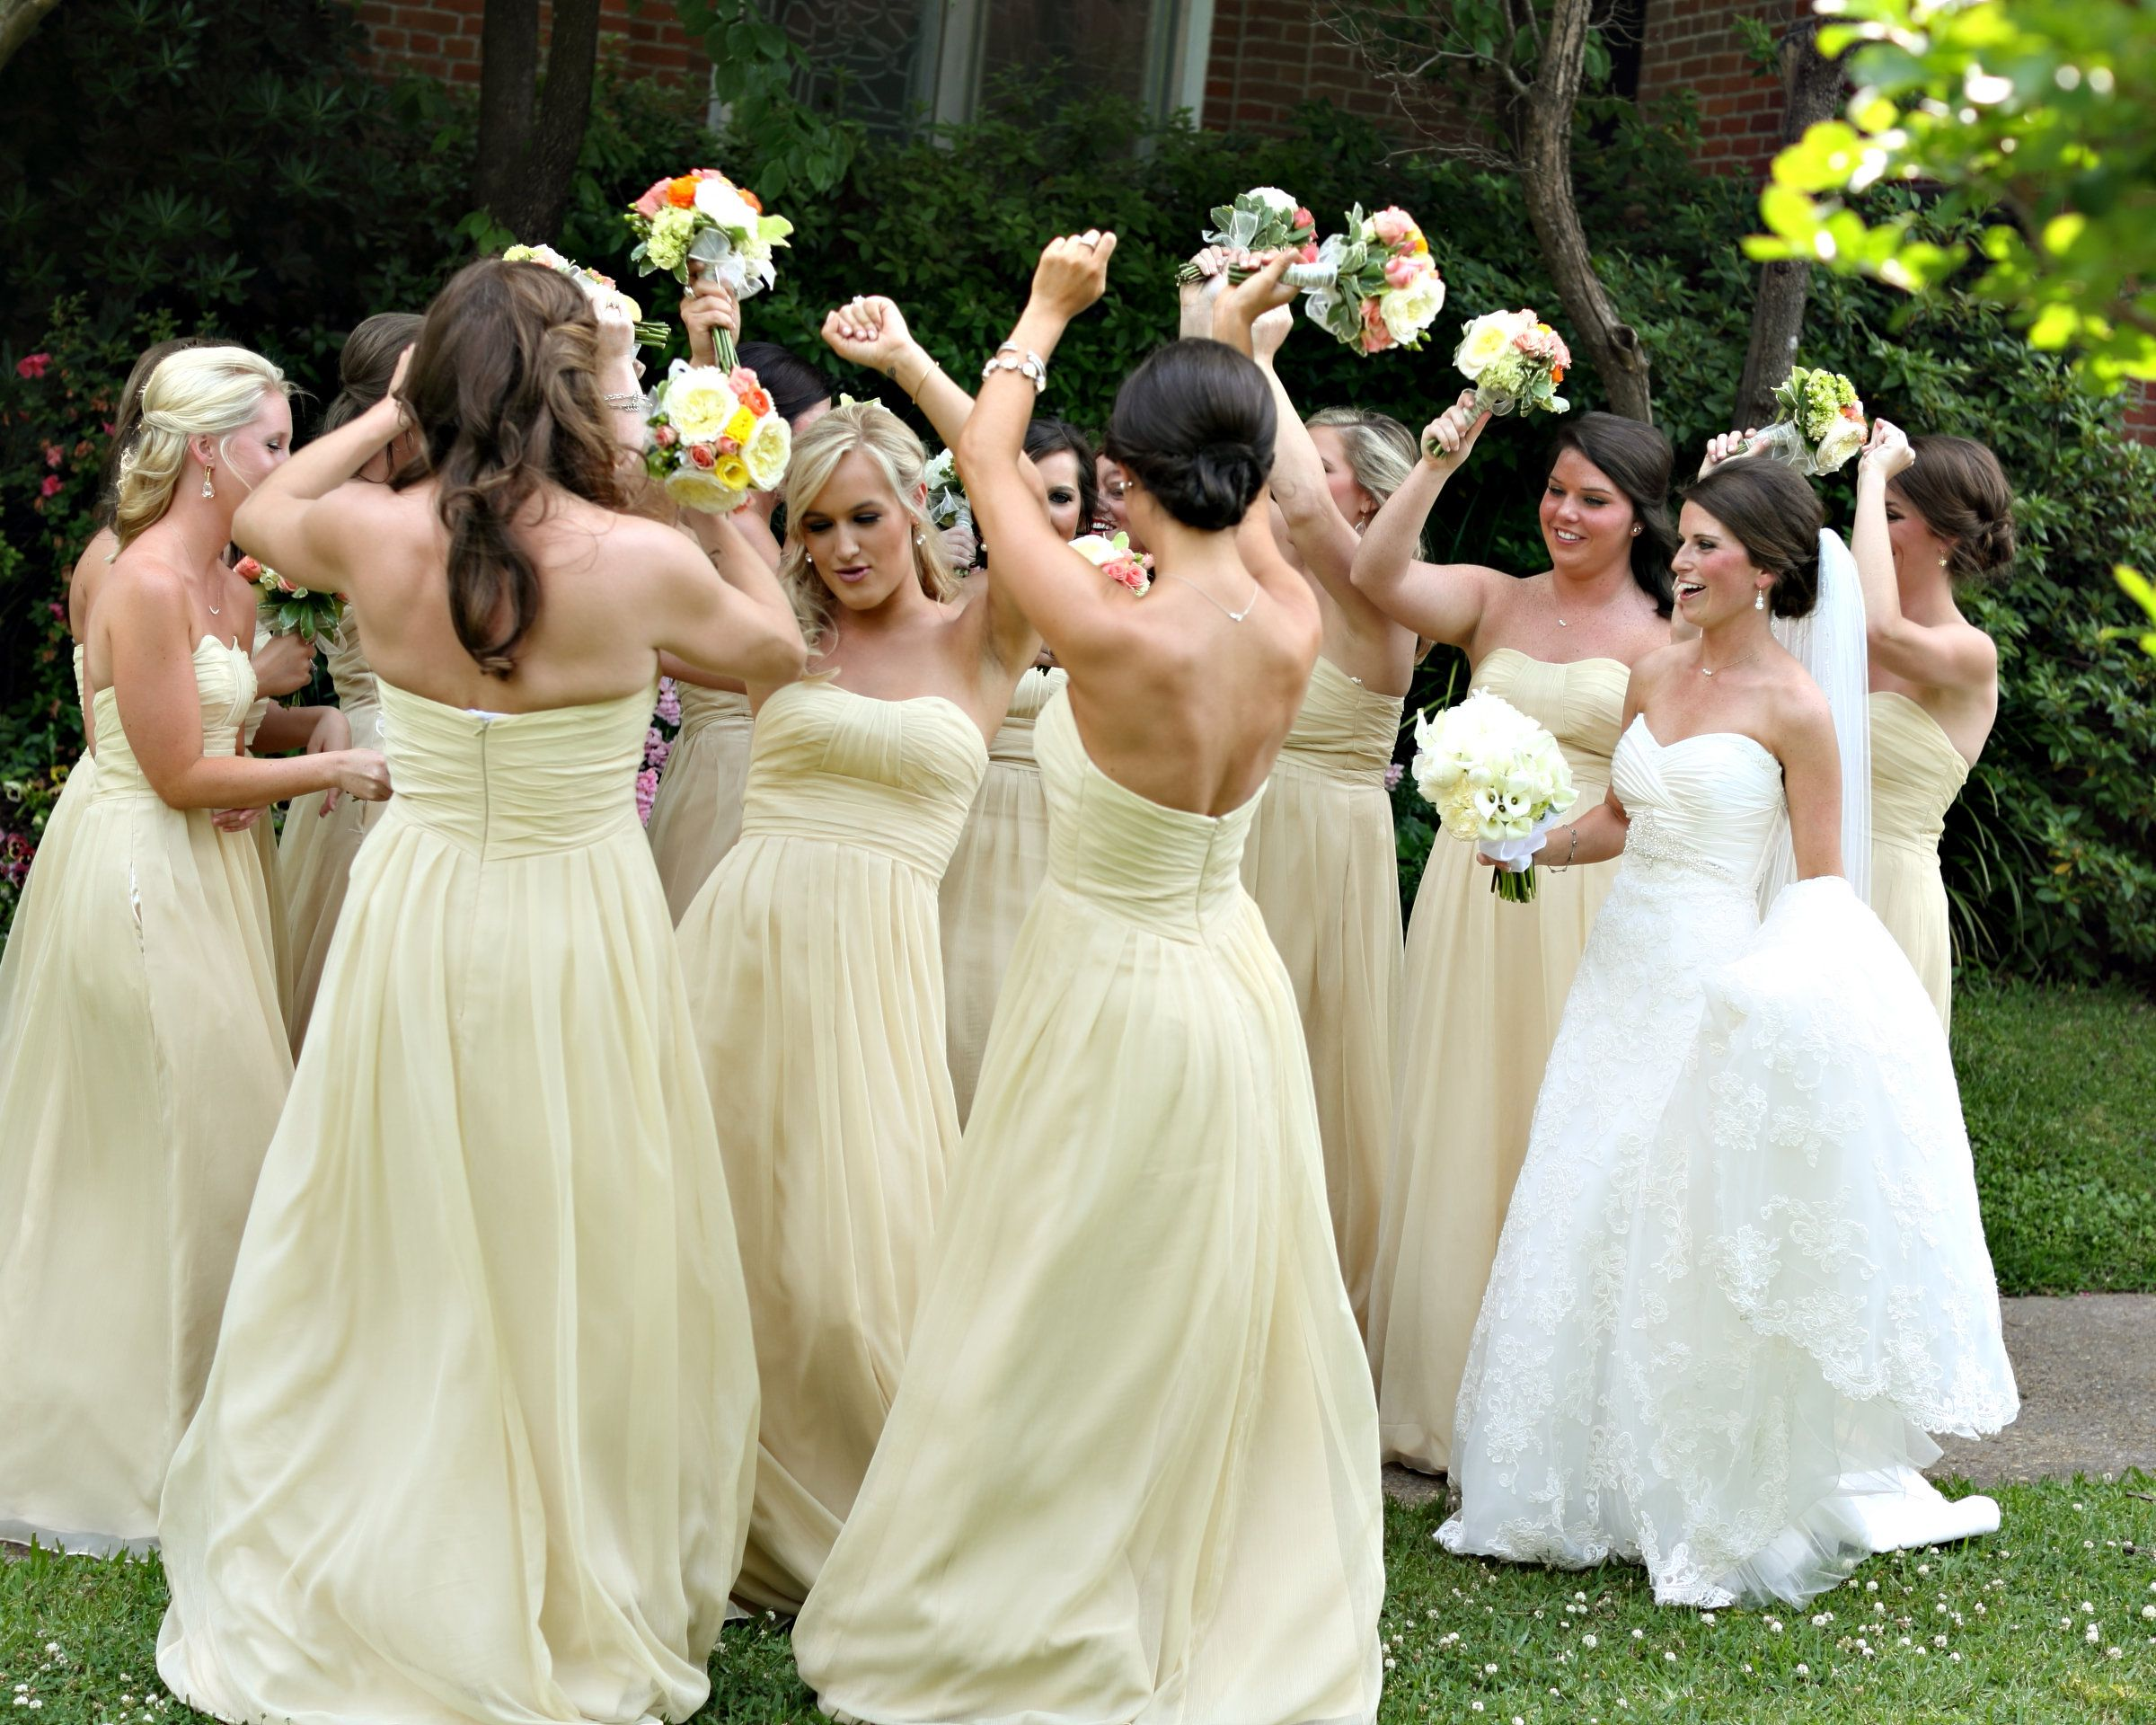 buttercup bridesmaids dresses | pale yellow bridesmaids dresses ...